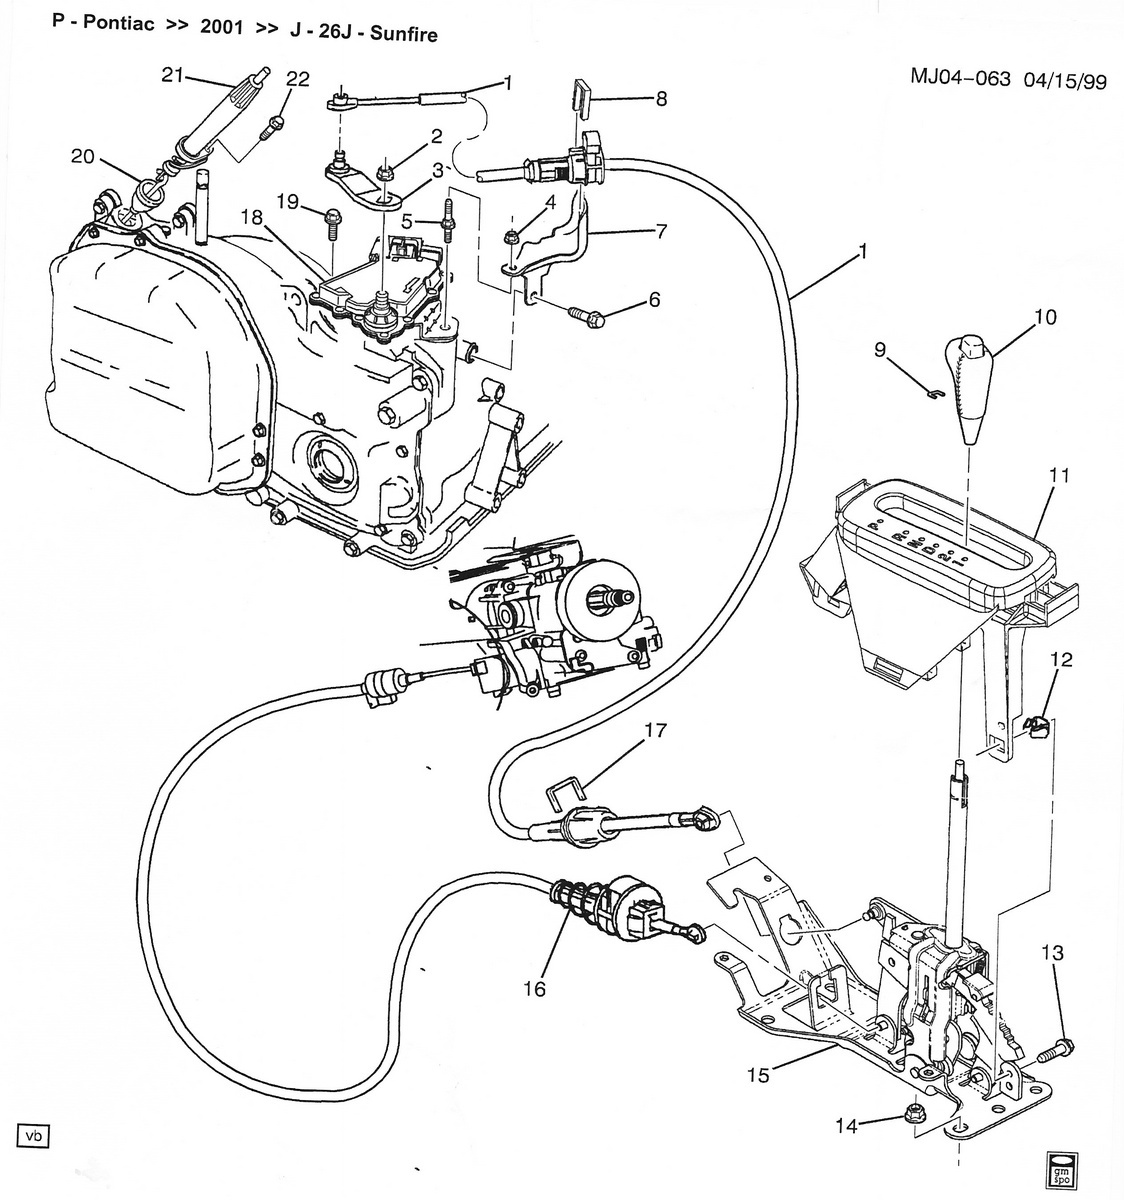 2002 Chevrolet Trailblazer Transmission Diagram, 2002